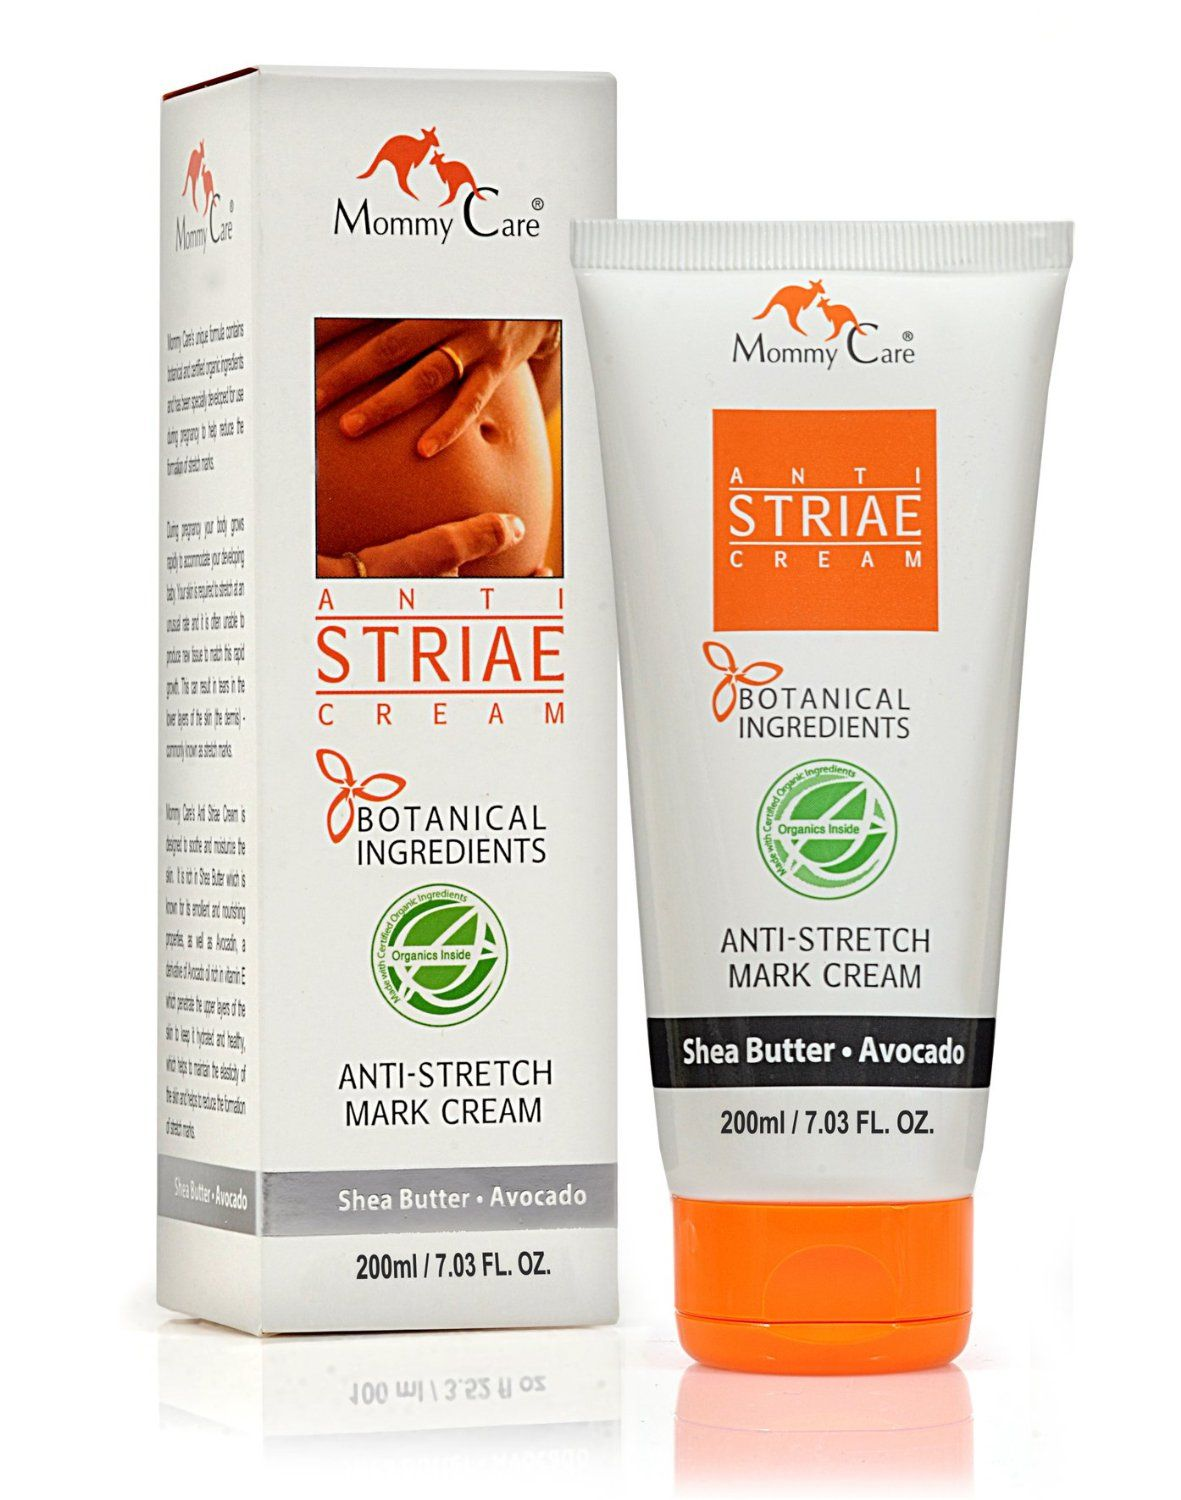 Mommy Care Anti Striae Cream Review - http://www.beststretchmarkremovalcream.com/mommy-care-anti-striae-cream-review/